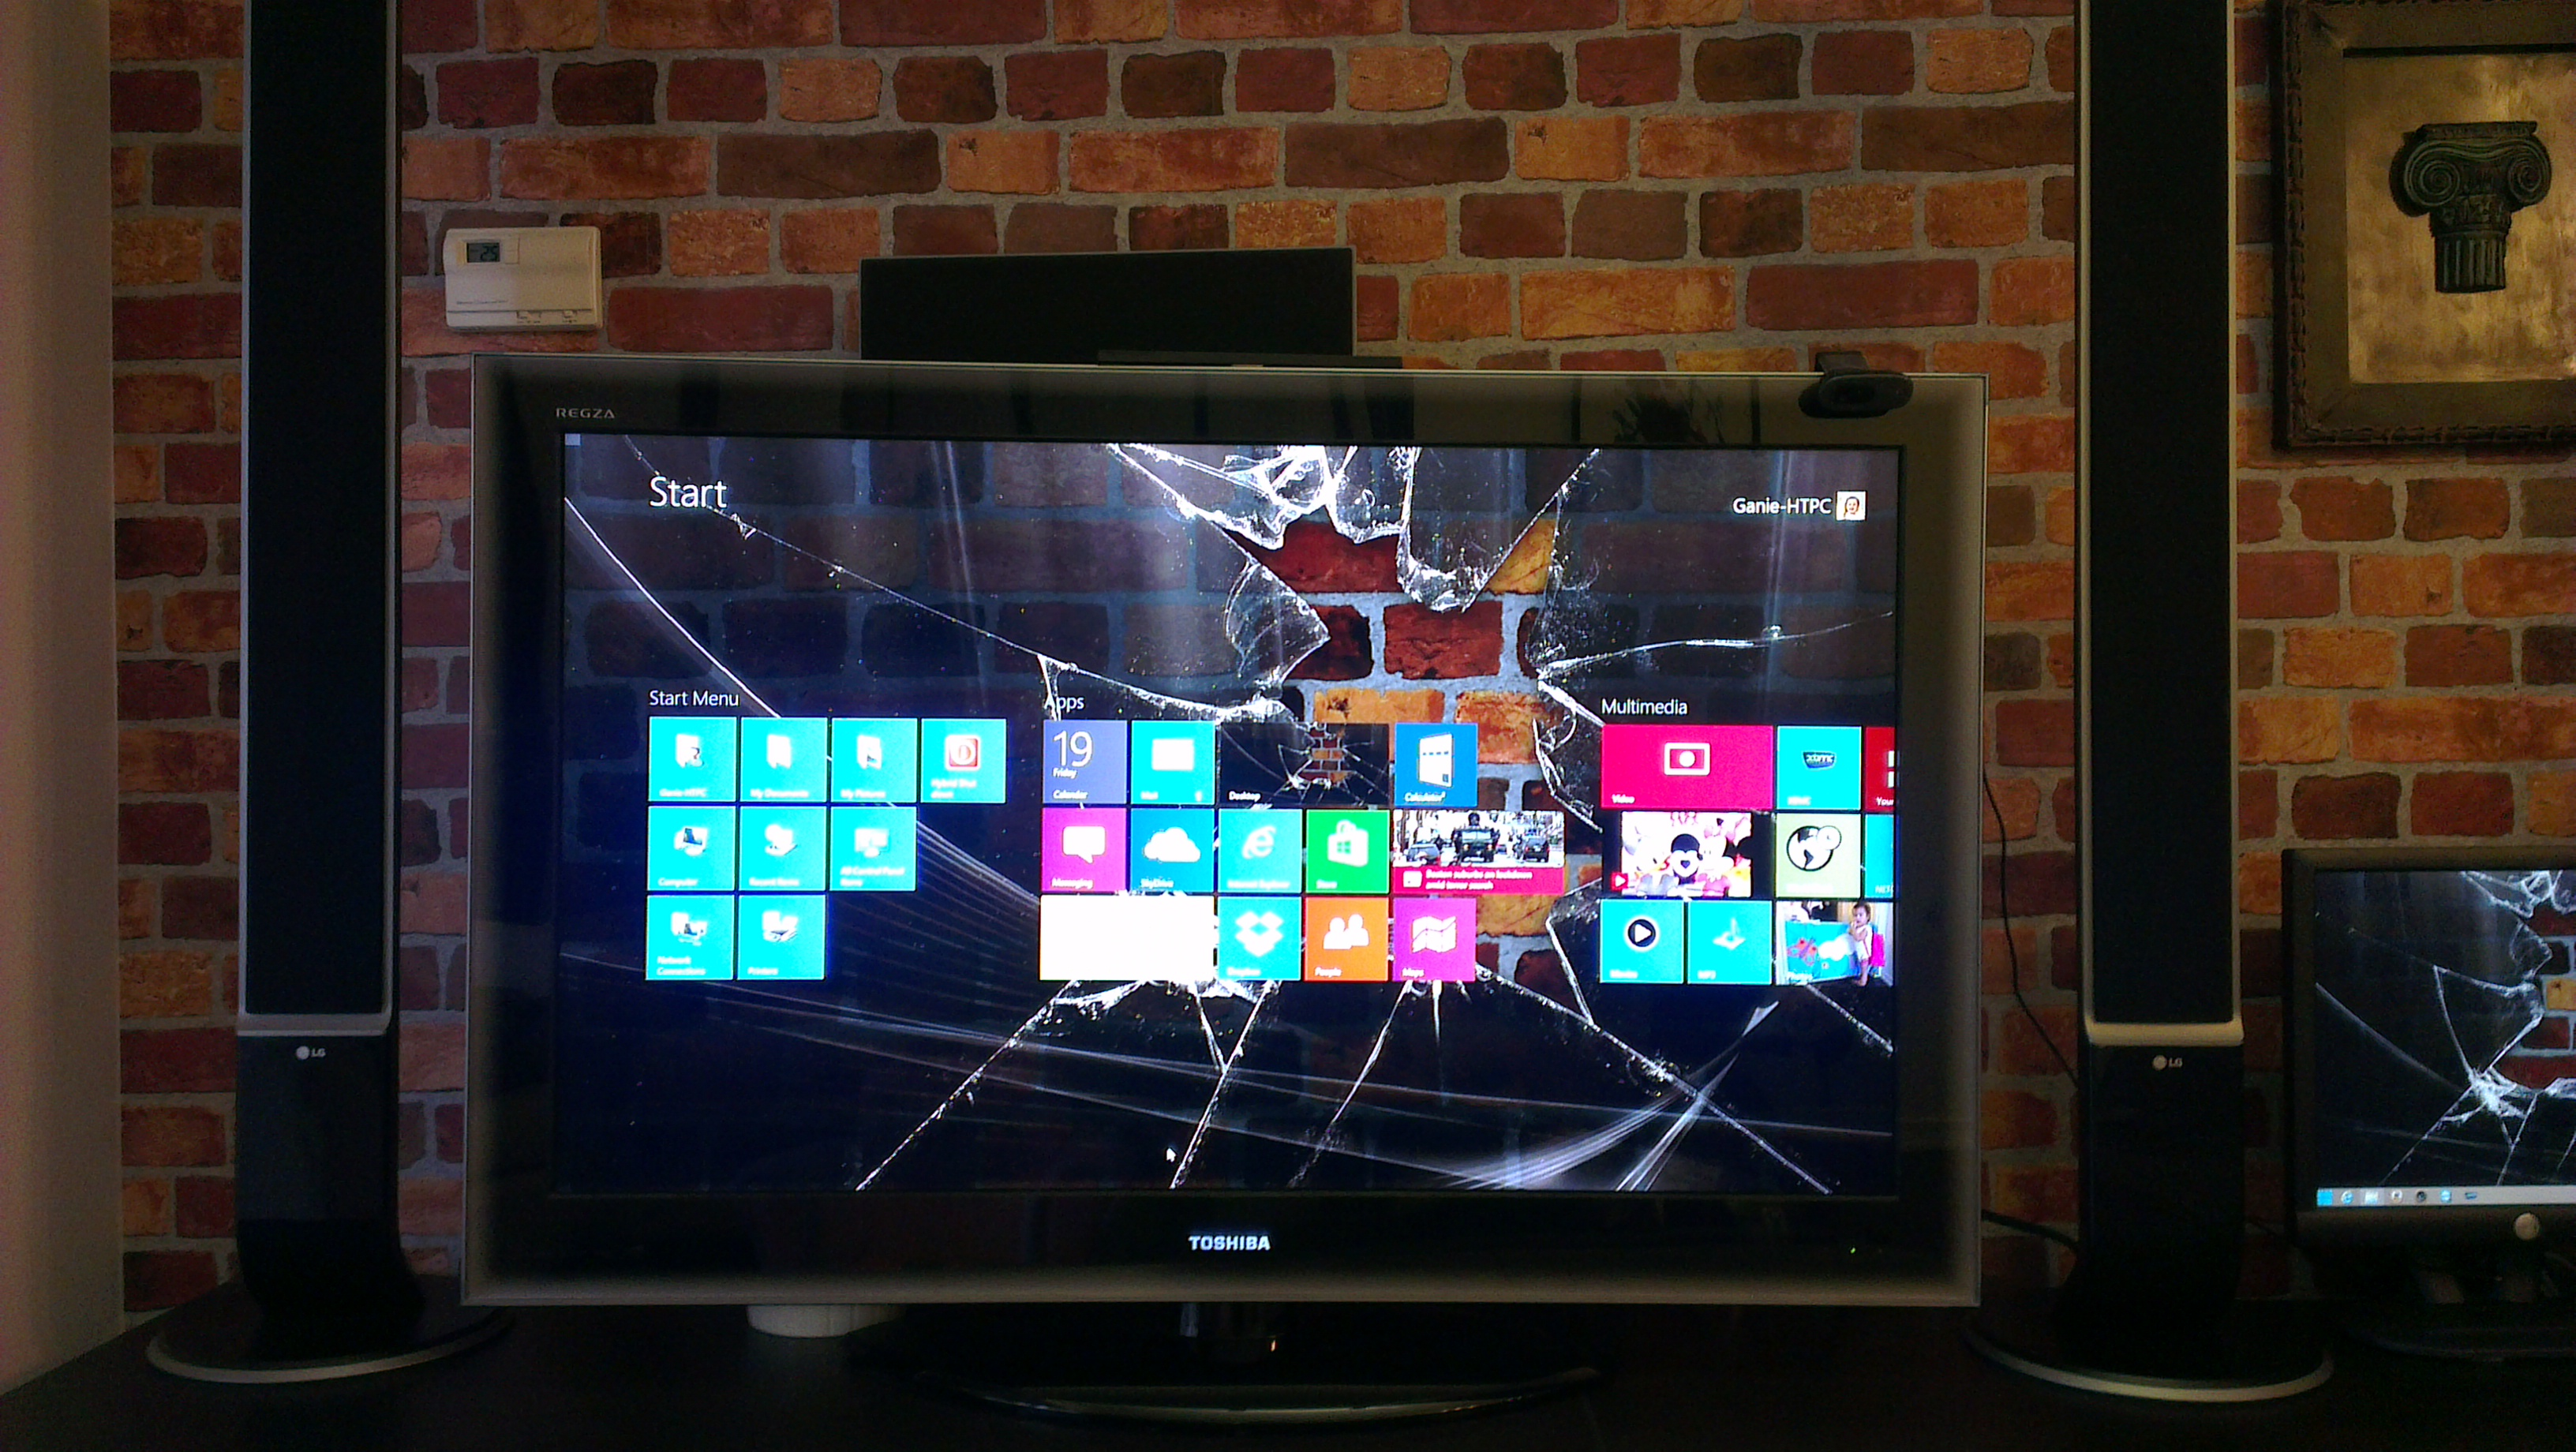 Broken tv screen repair cost